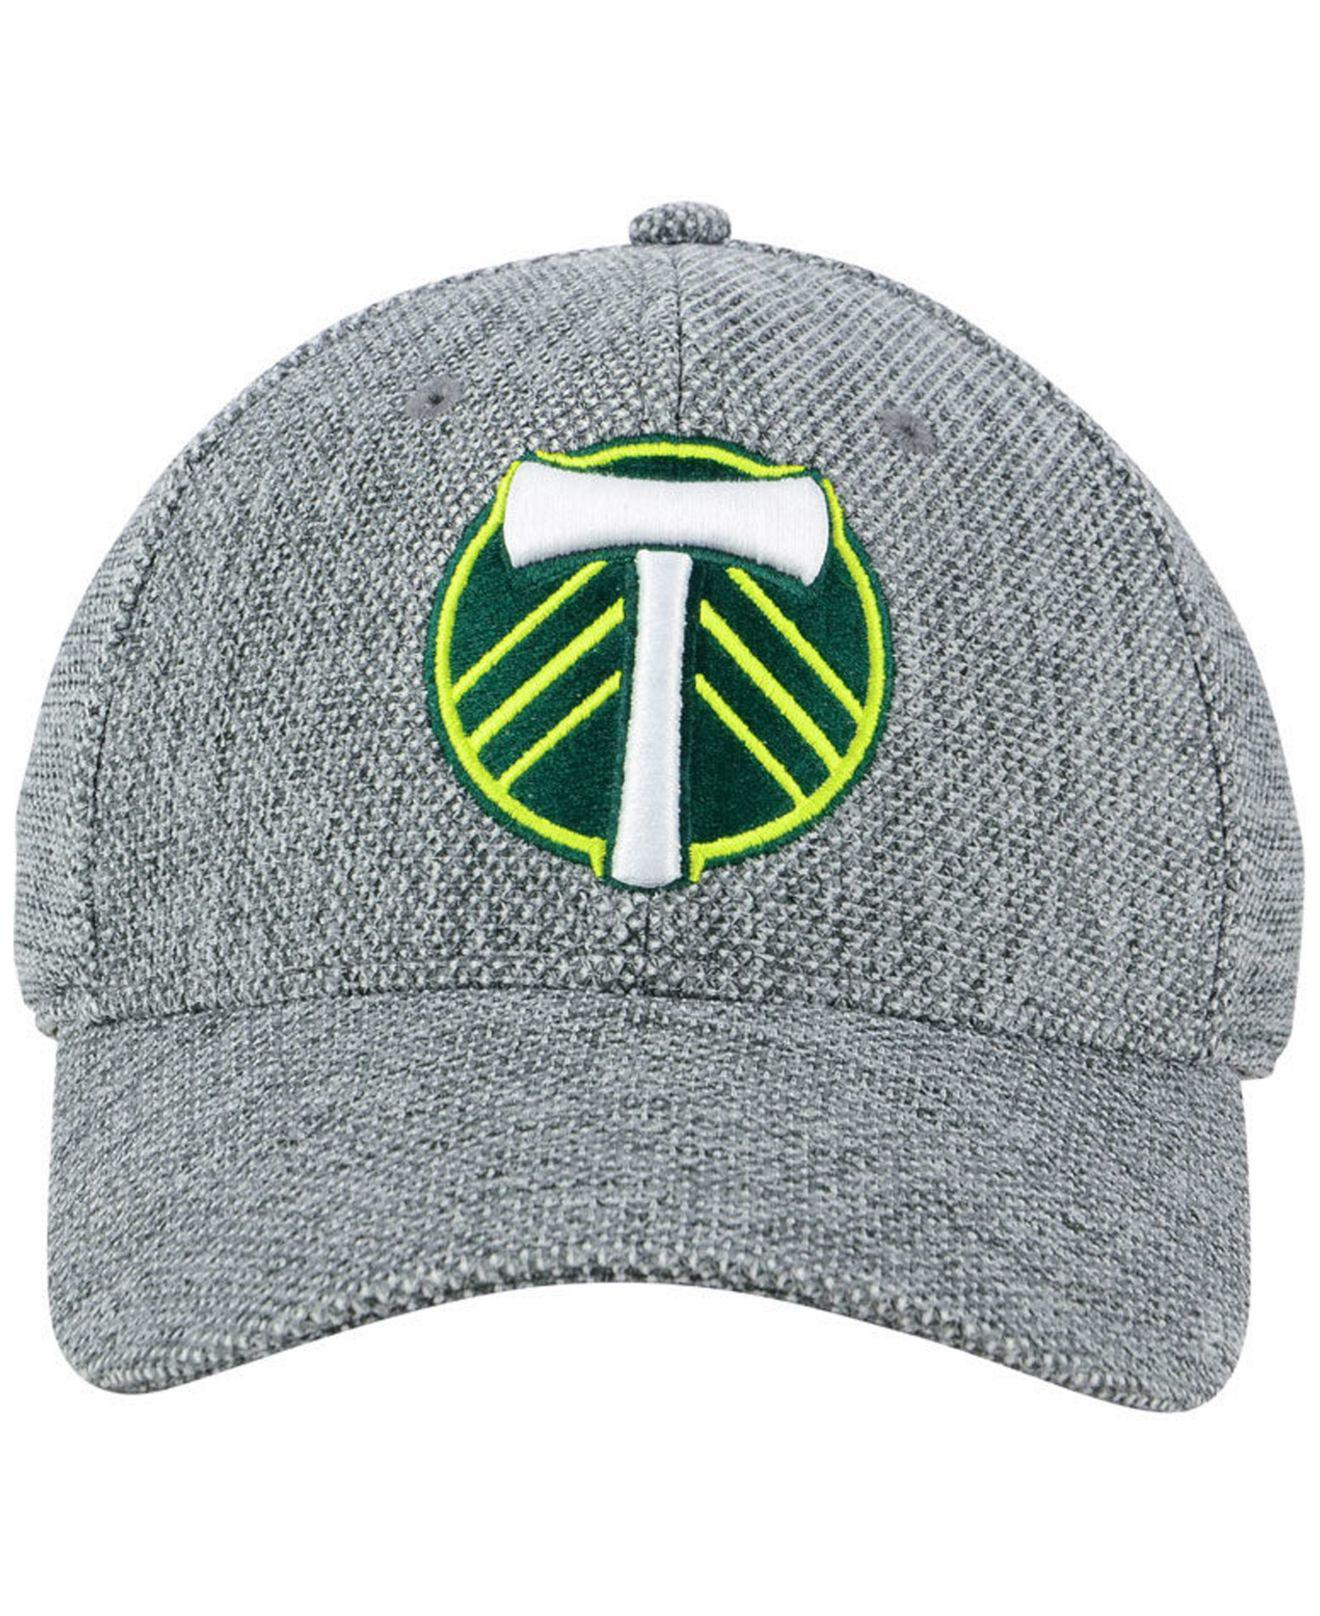 sports shoes c1df9 8a559 ... sweden lyst adidas portland timbers penalty kick flex cap in gray for  men b031c 83cc3